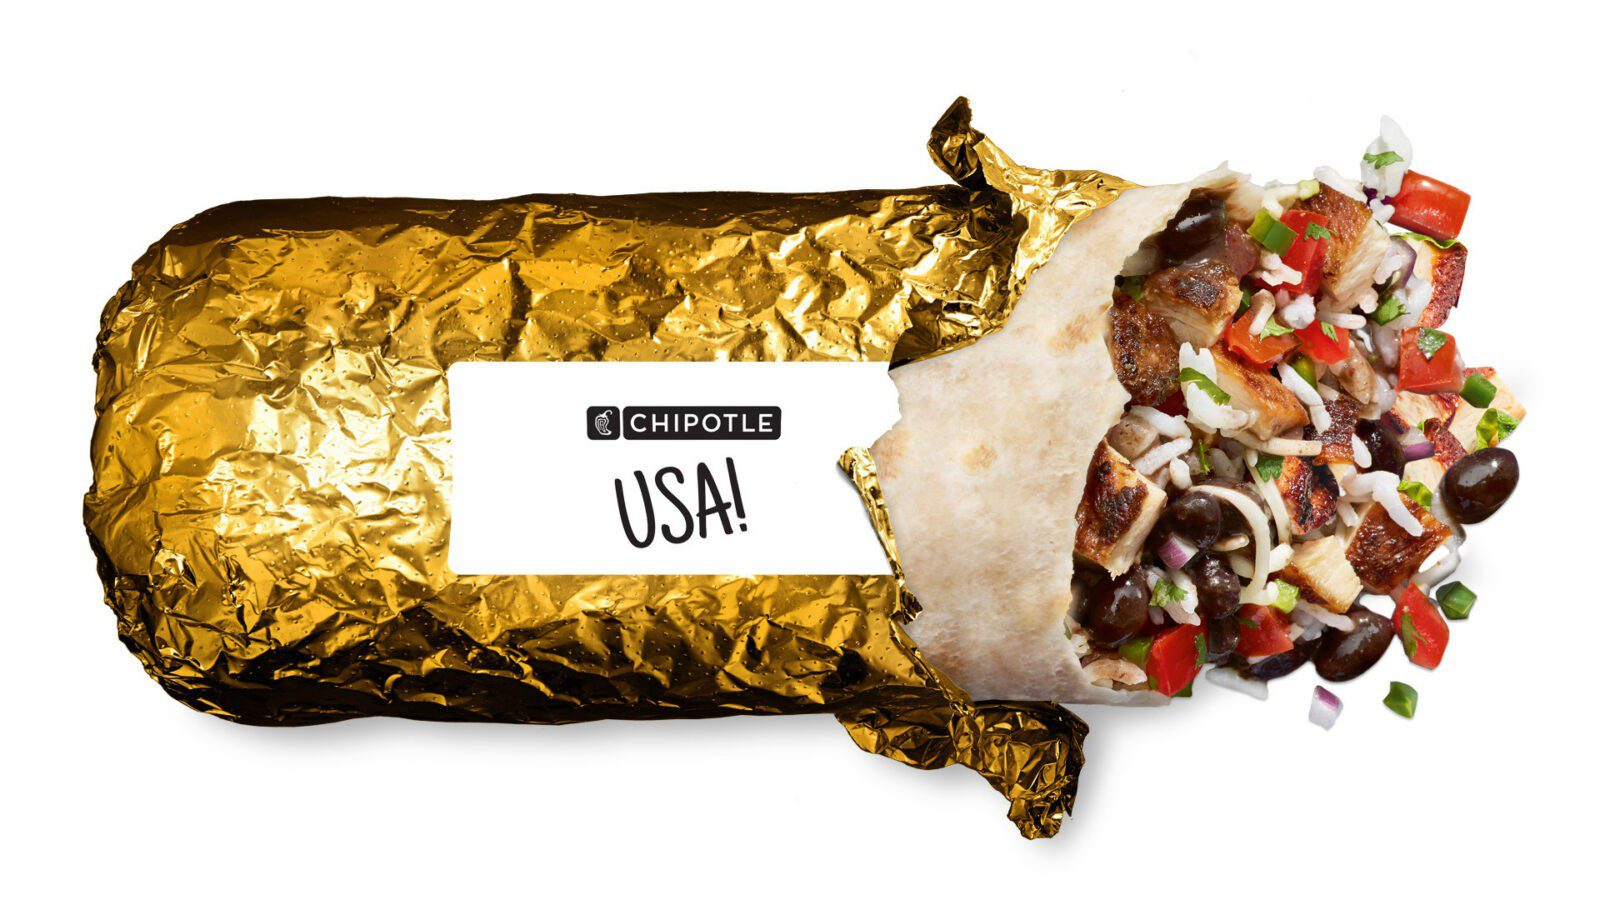 Chipotle Rolls Out Gold Foil – Celebrate American Athletes In Tokyo